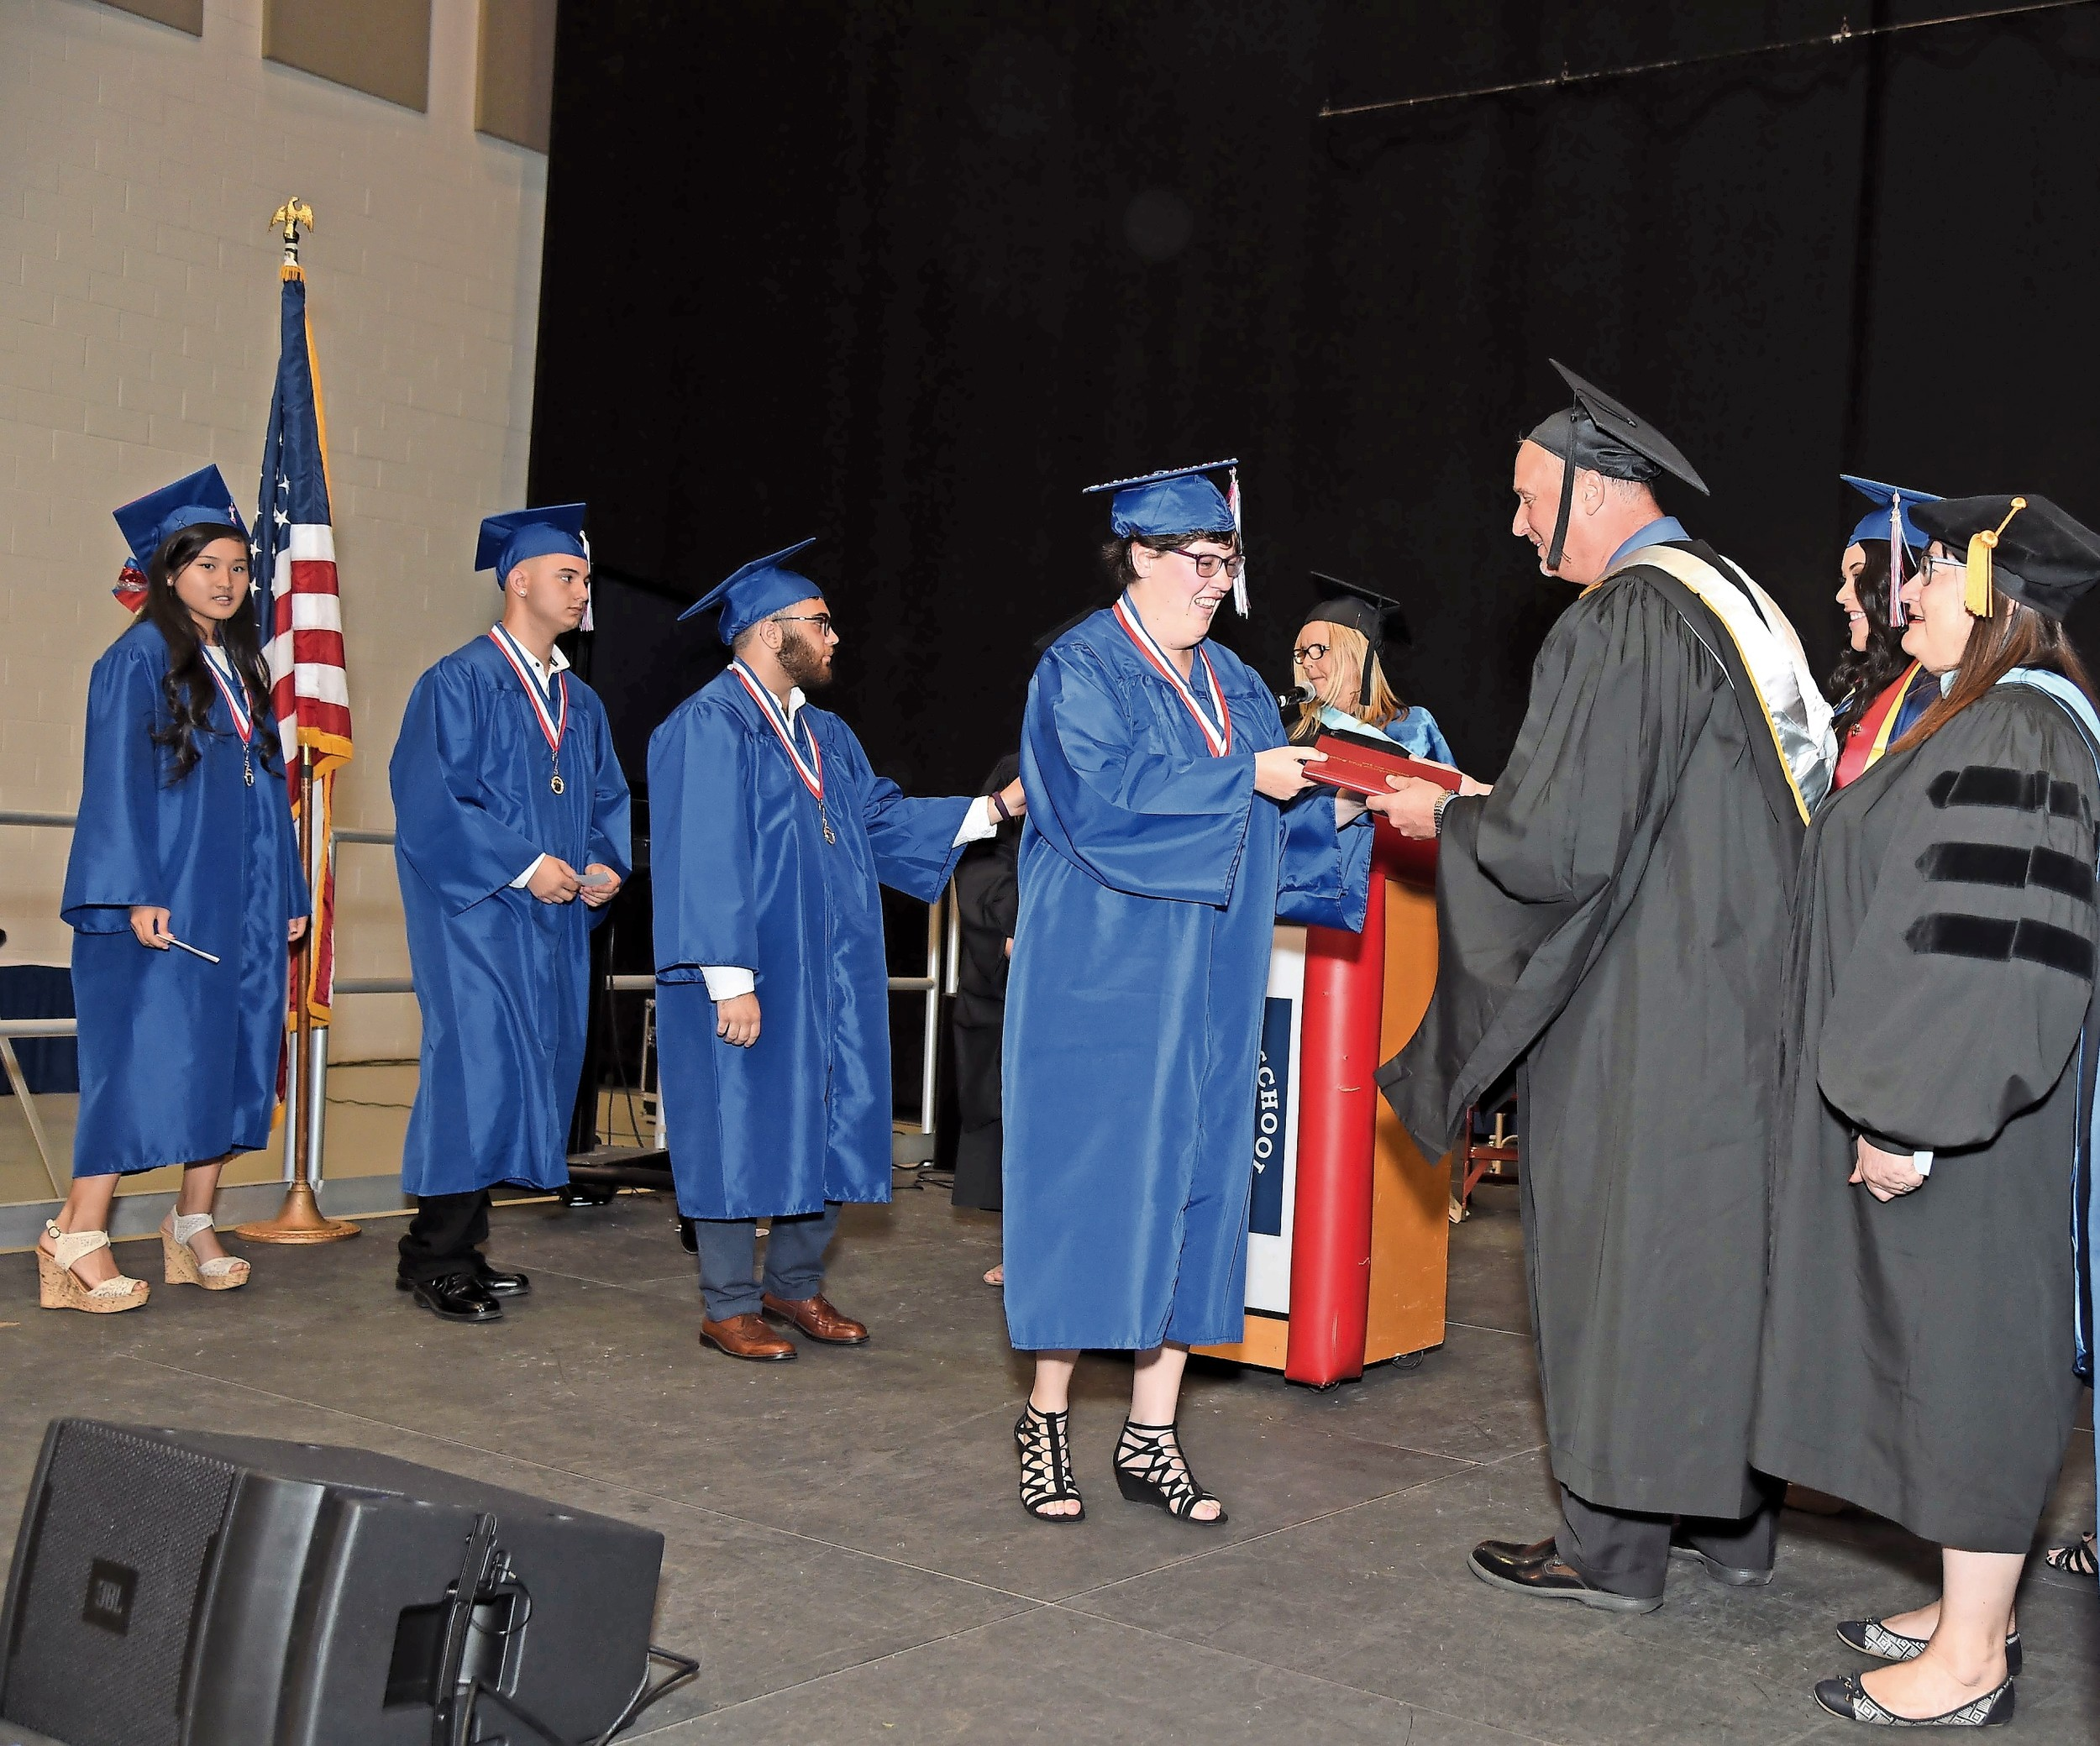 Katie Butler received her diploma.